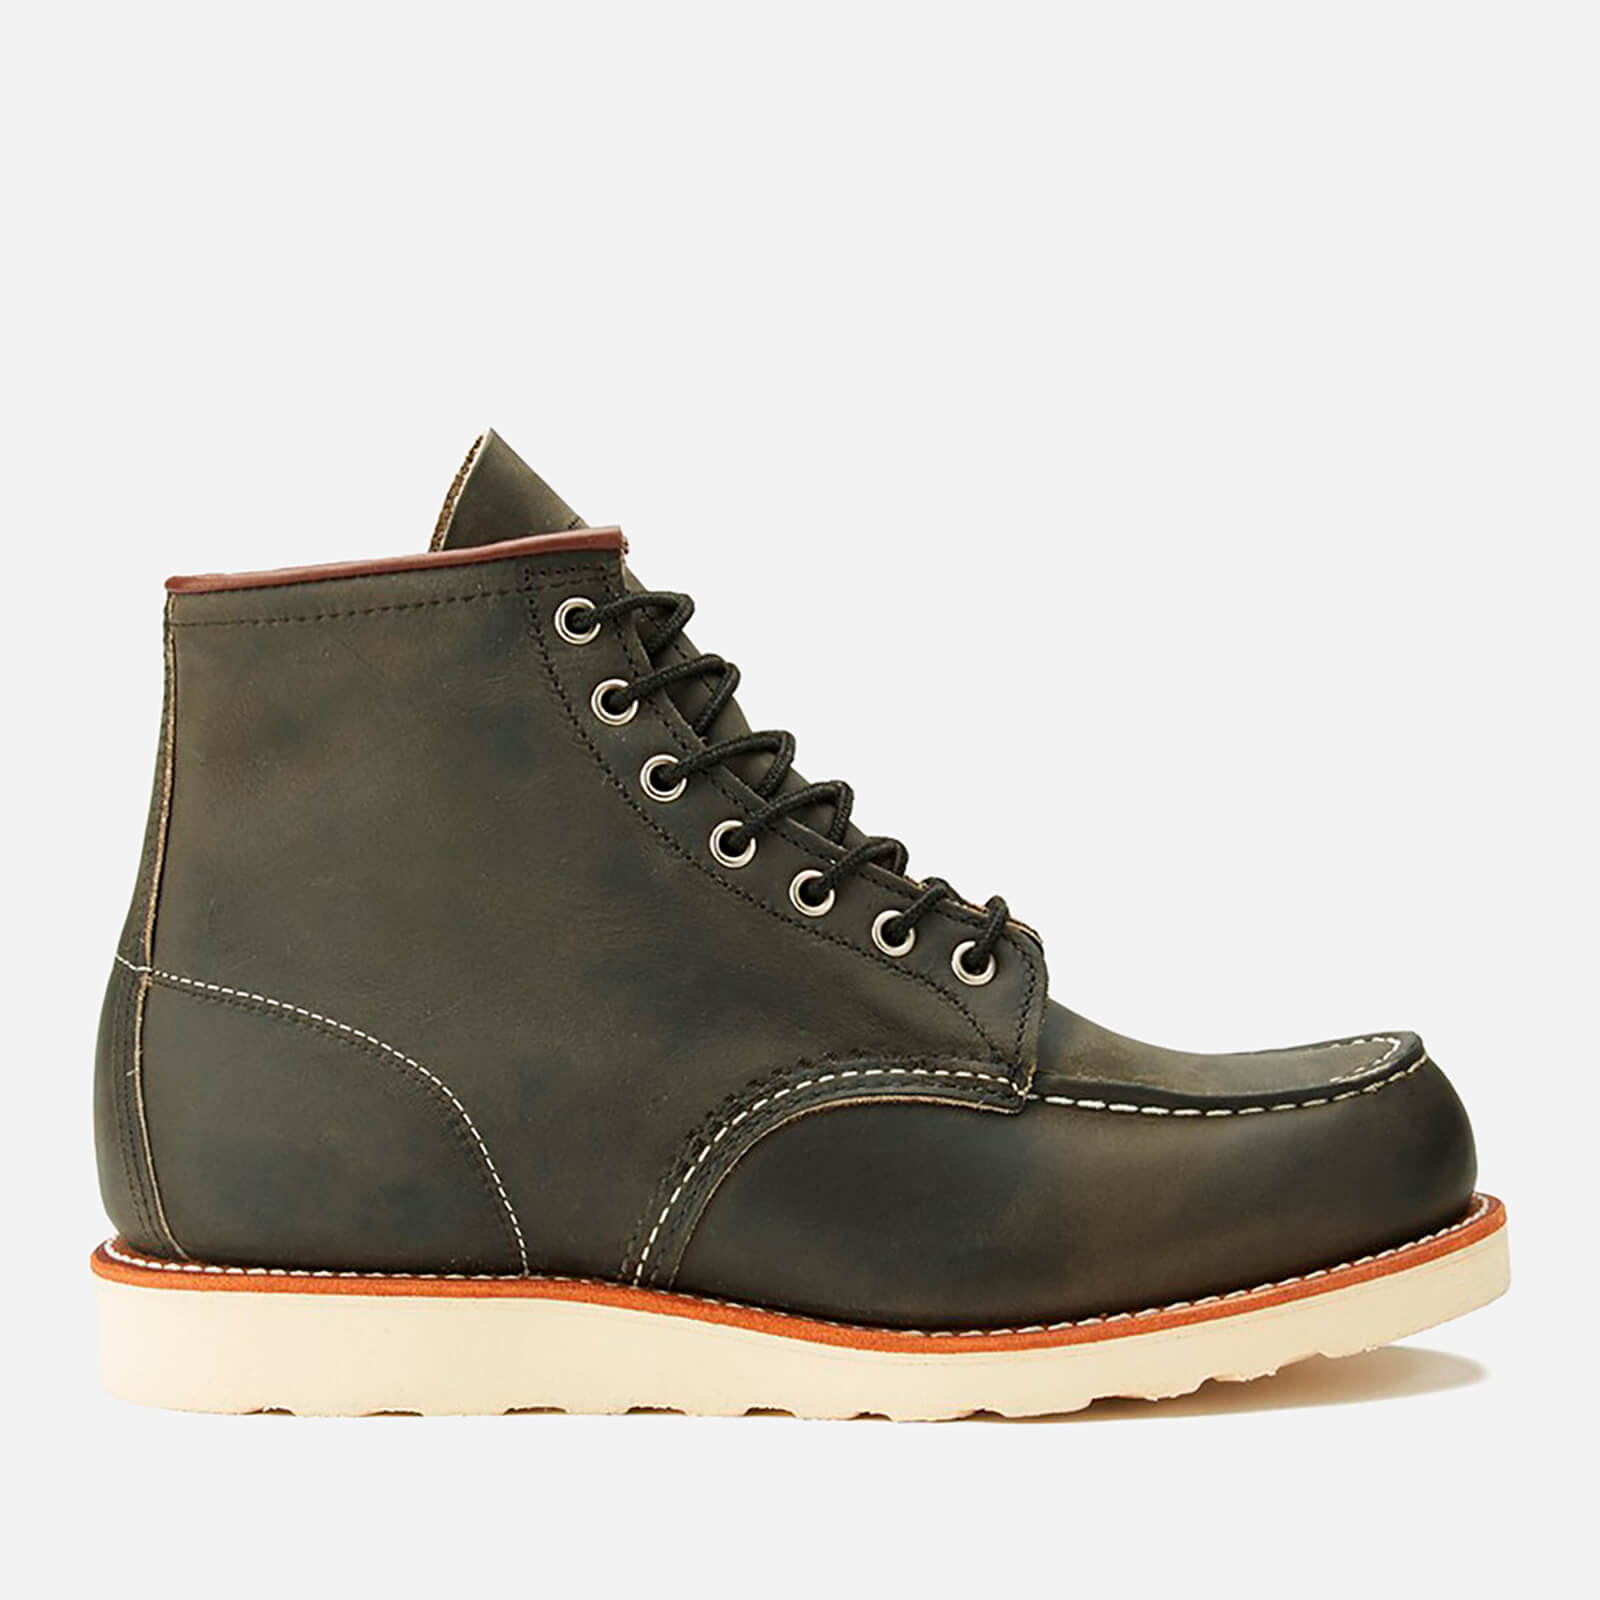 b1b746ff8b52 Red Wing Men s 6 Inch Moc Toe Leather Lace Up Boots - Charcoal Rough and  Tough - Free UK Delivery over £50